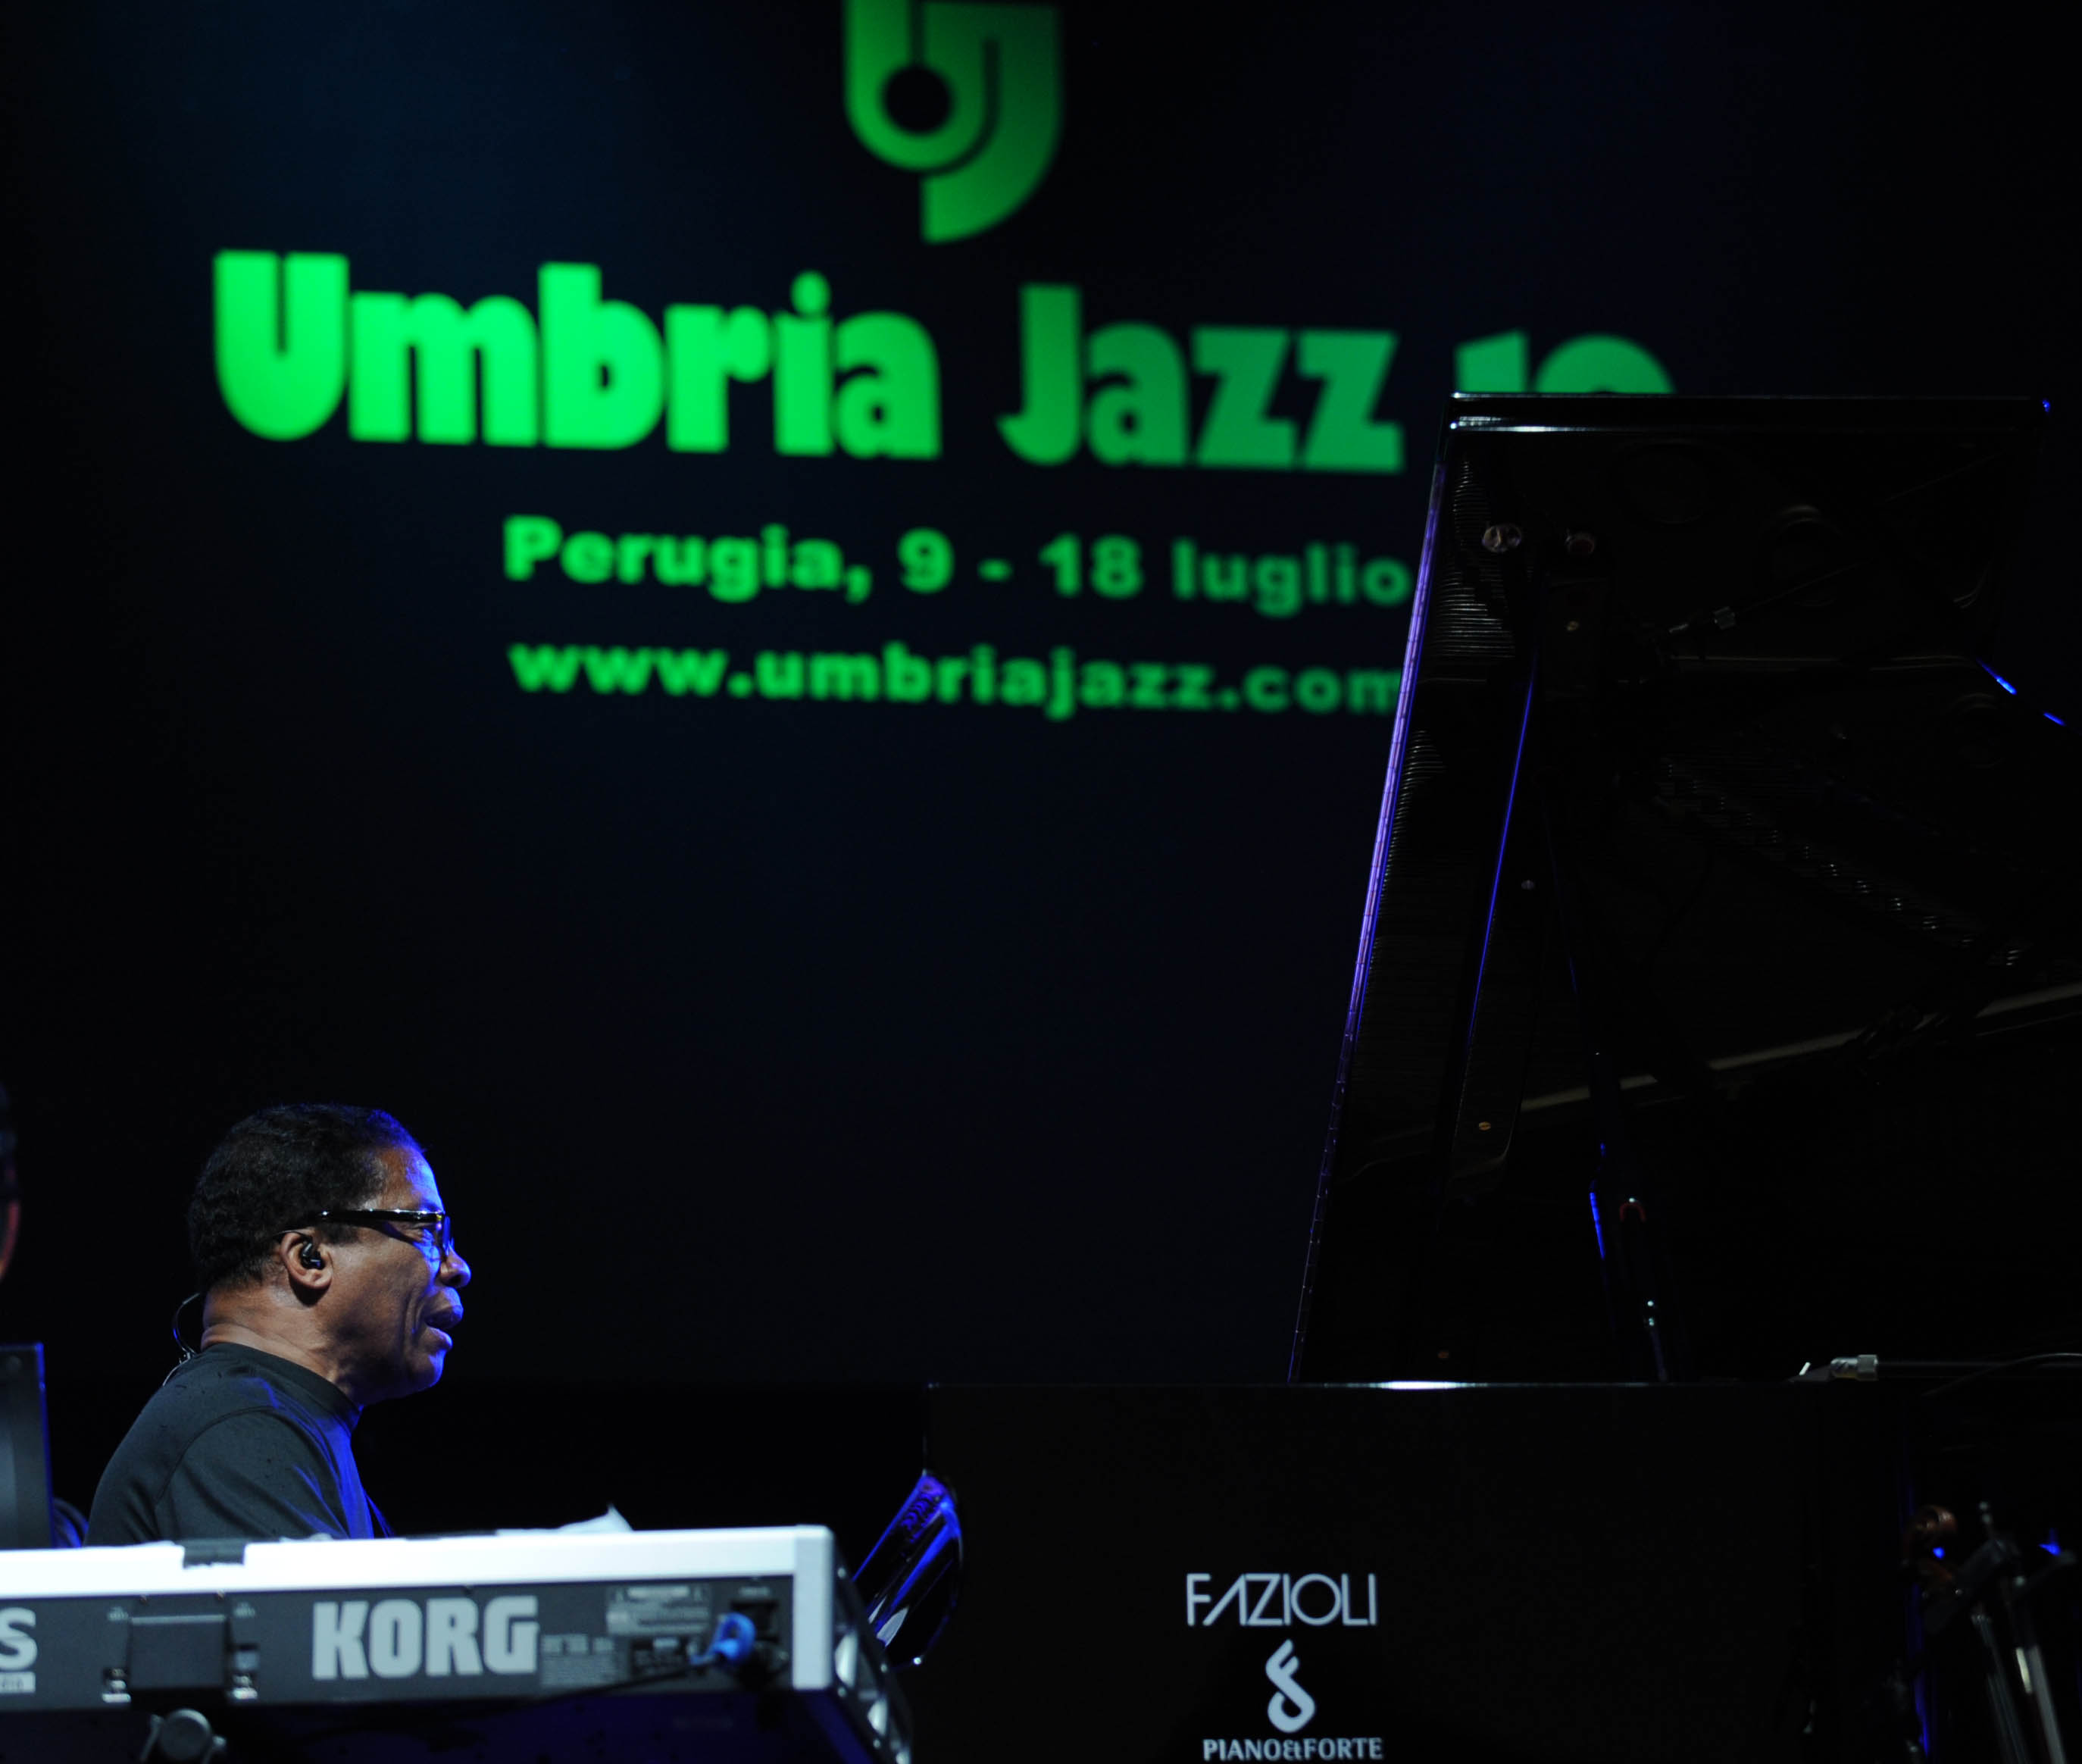 ©  Giancarlo Belfiore/Umbria Jazz. All Rights Reserved.